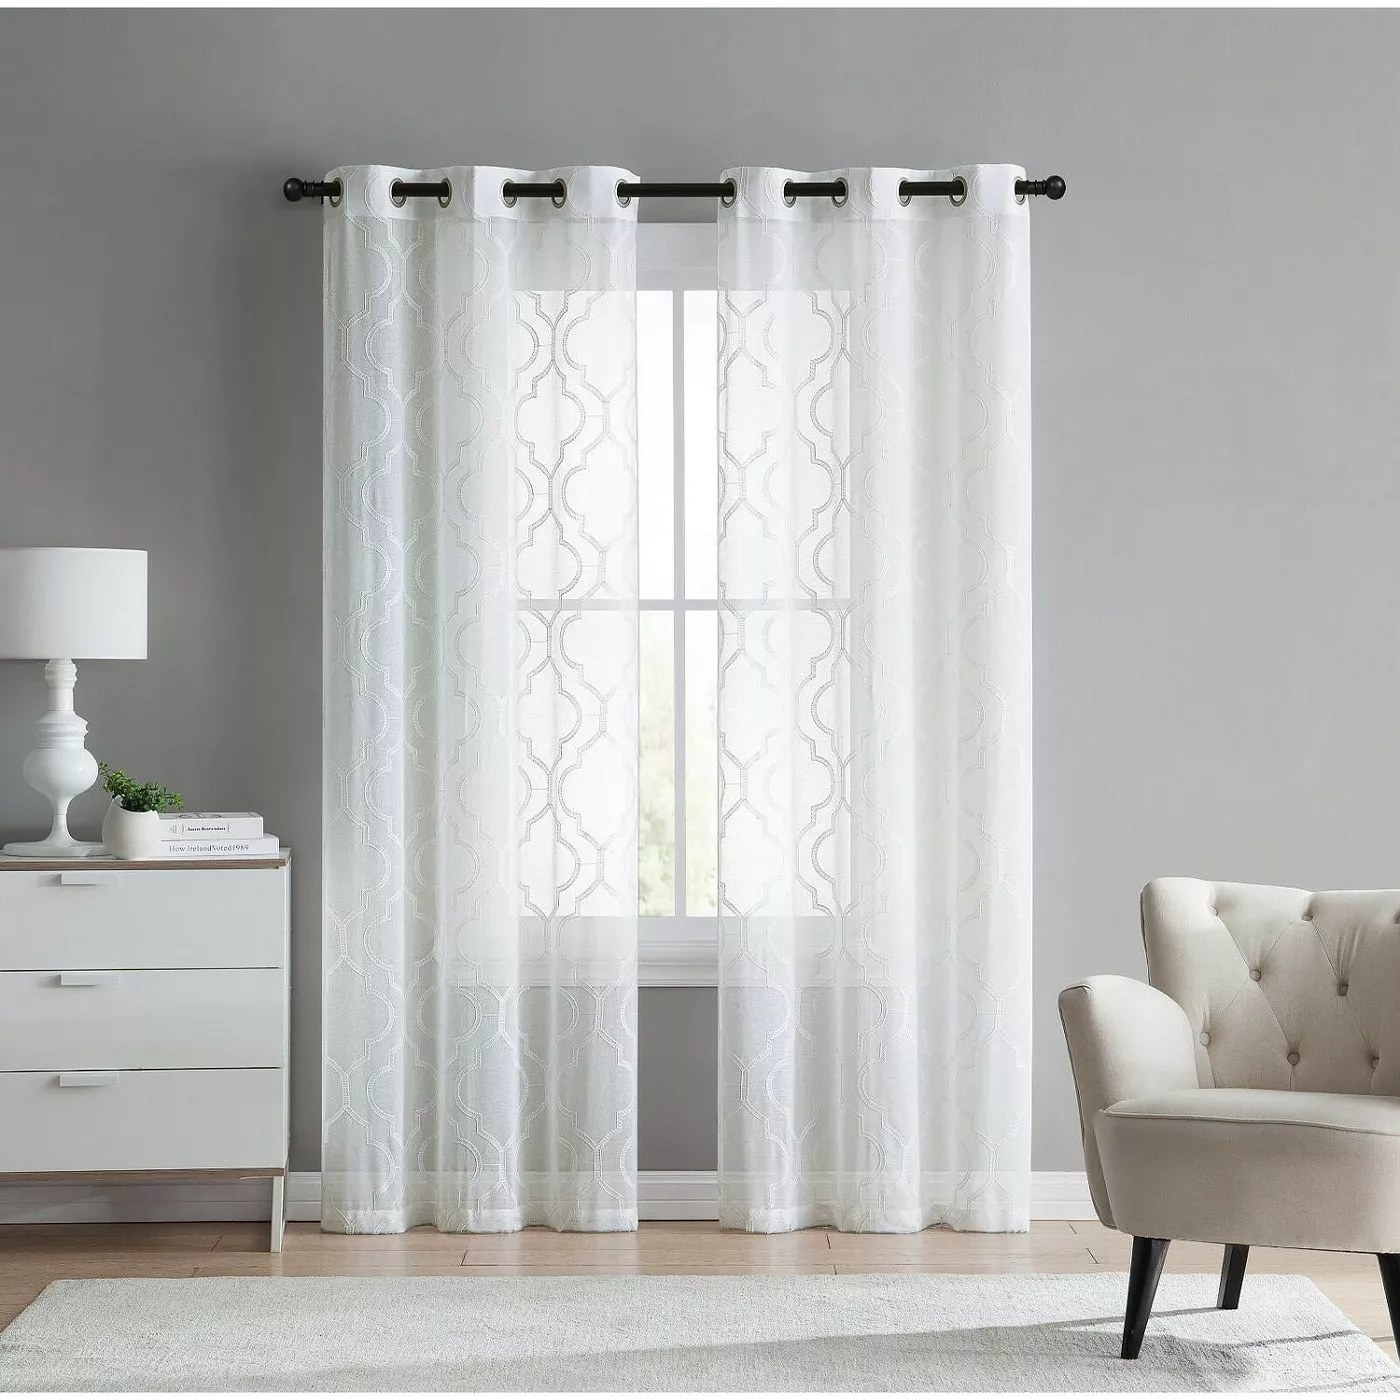 The curtains in white